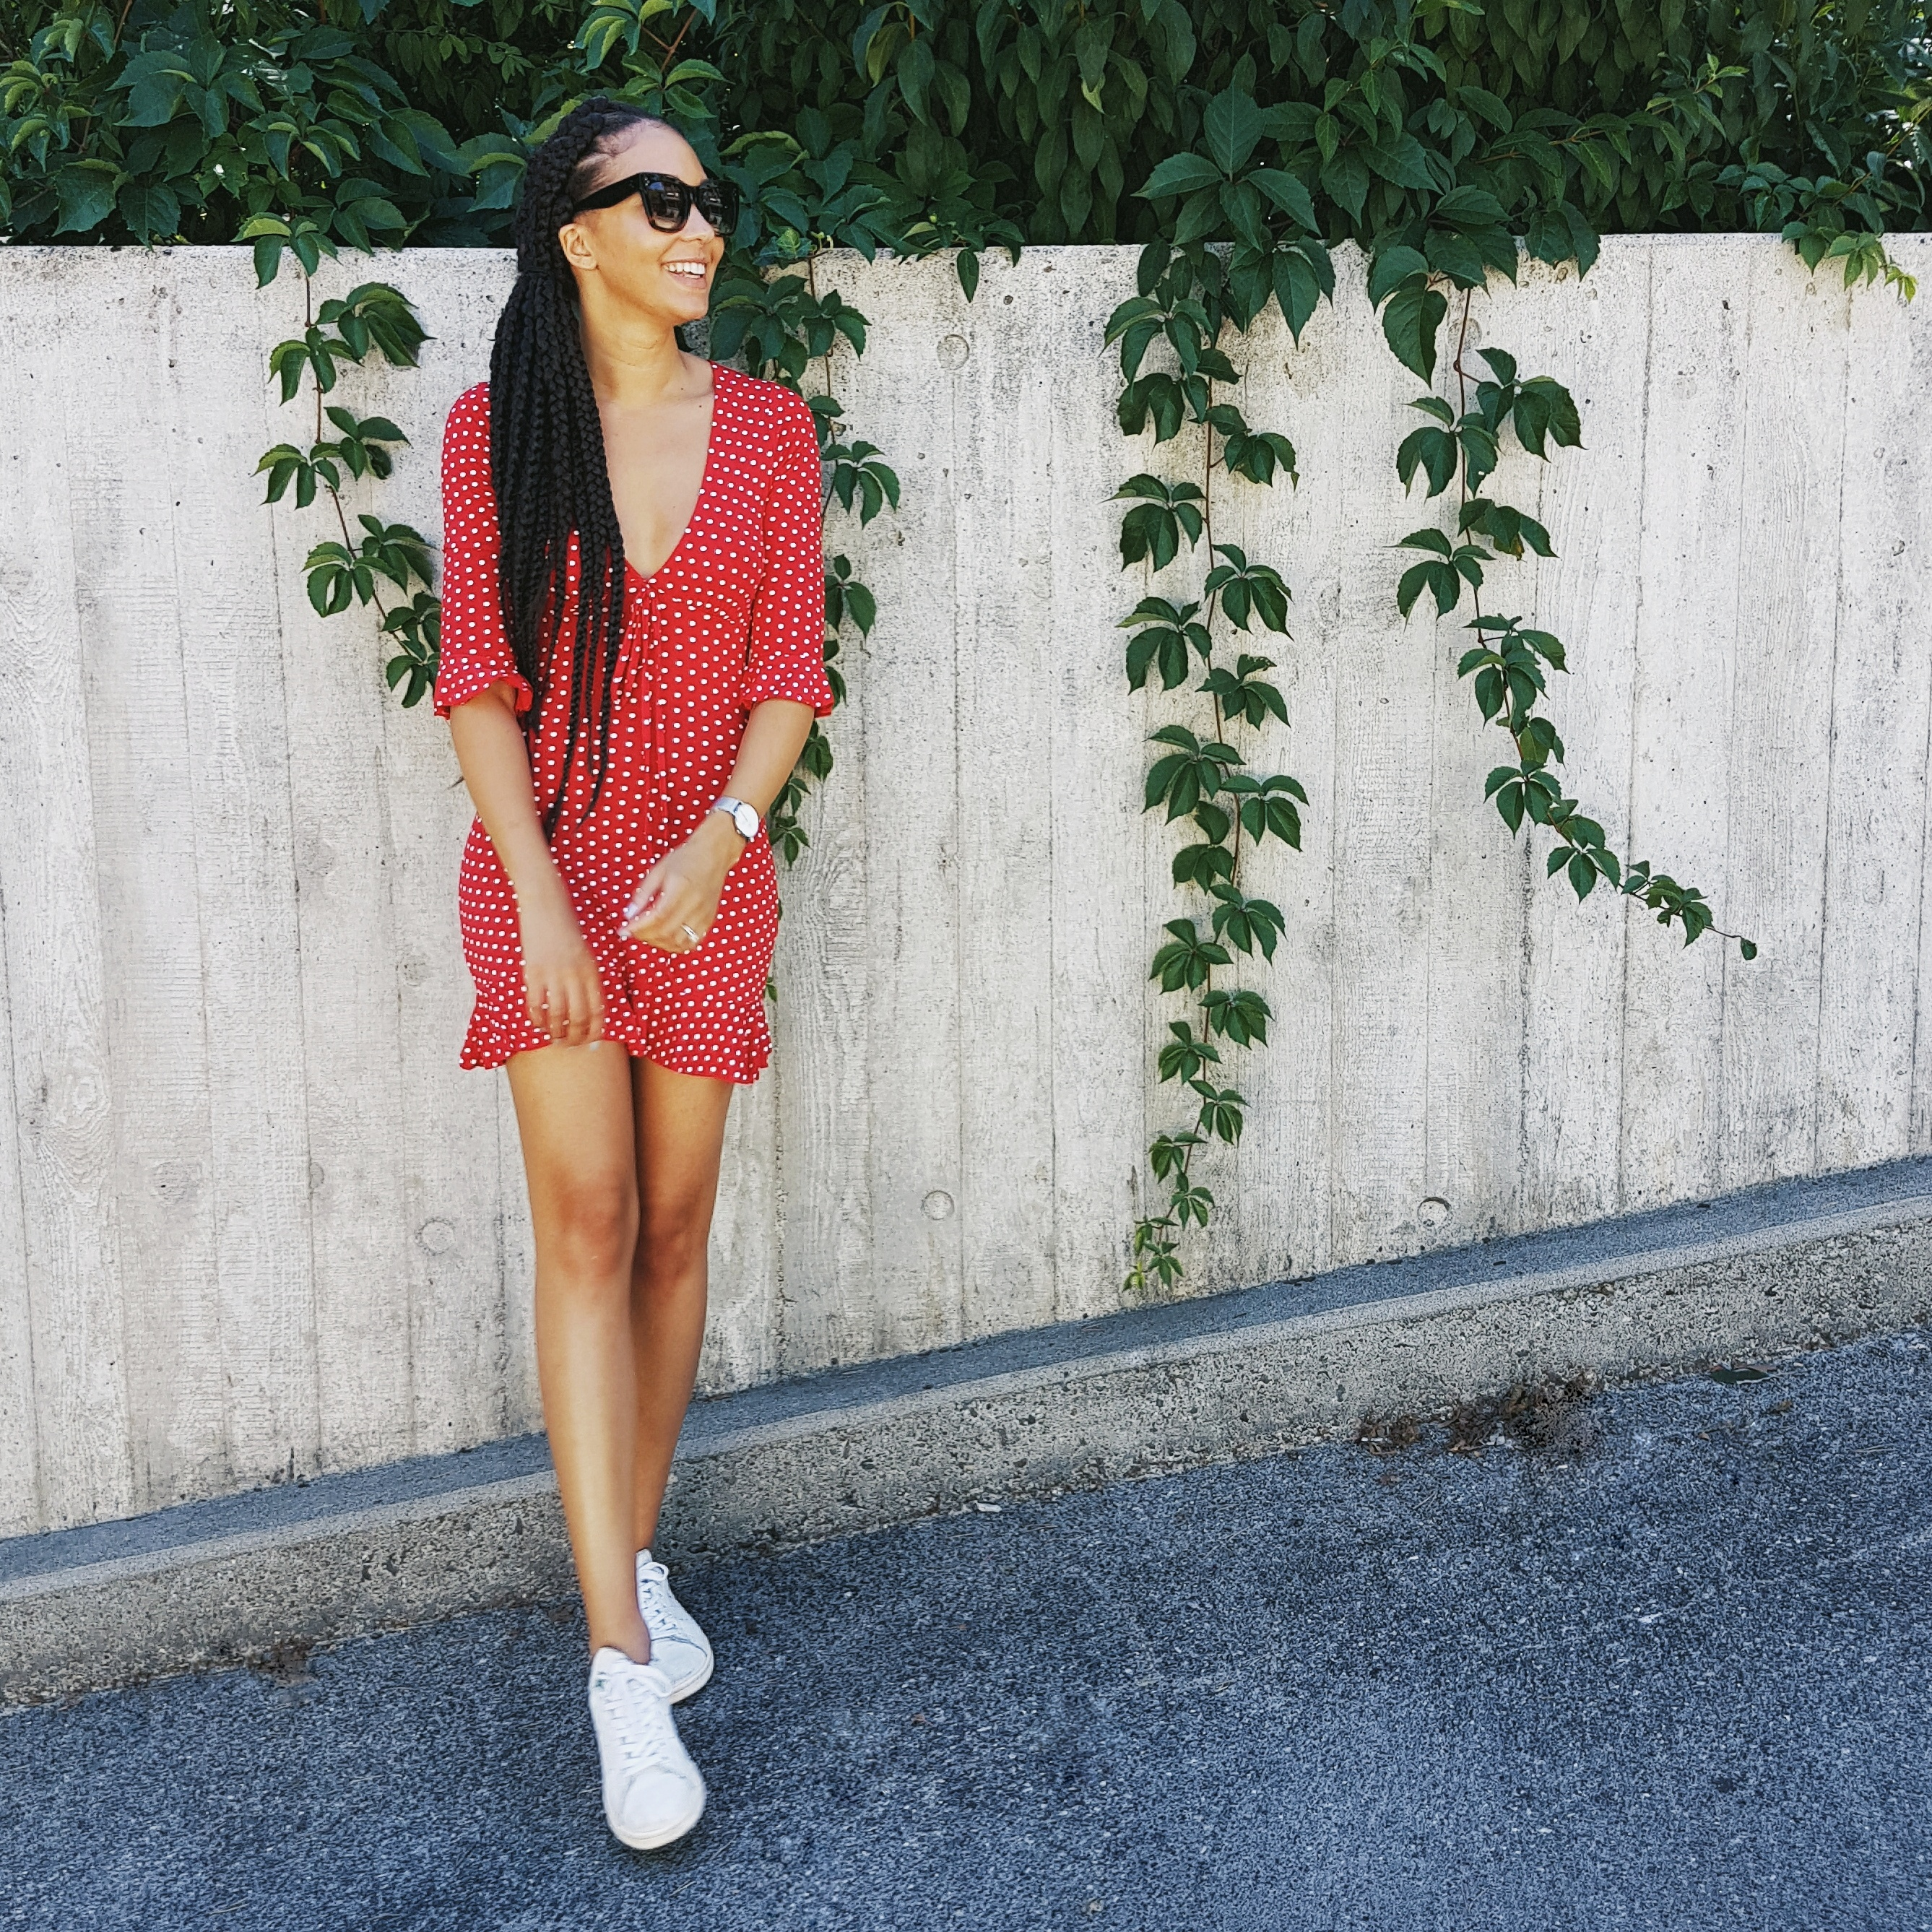 mercredie-blog-mode-blogueuse-bloggeuse-suisse-geneve-robe-missguided-retro-poids-polka-dot-rouge-sexy-red-realisation-par-dupe-superstar-adidas-box-braids-jumbo-tresses-celine-lunettes-shades